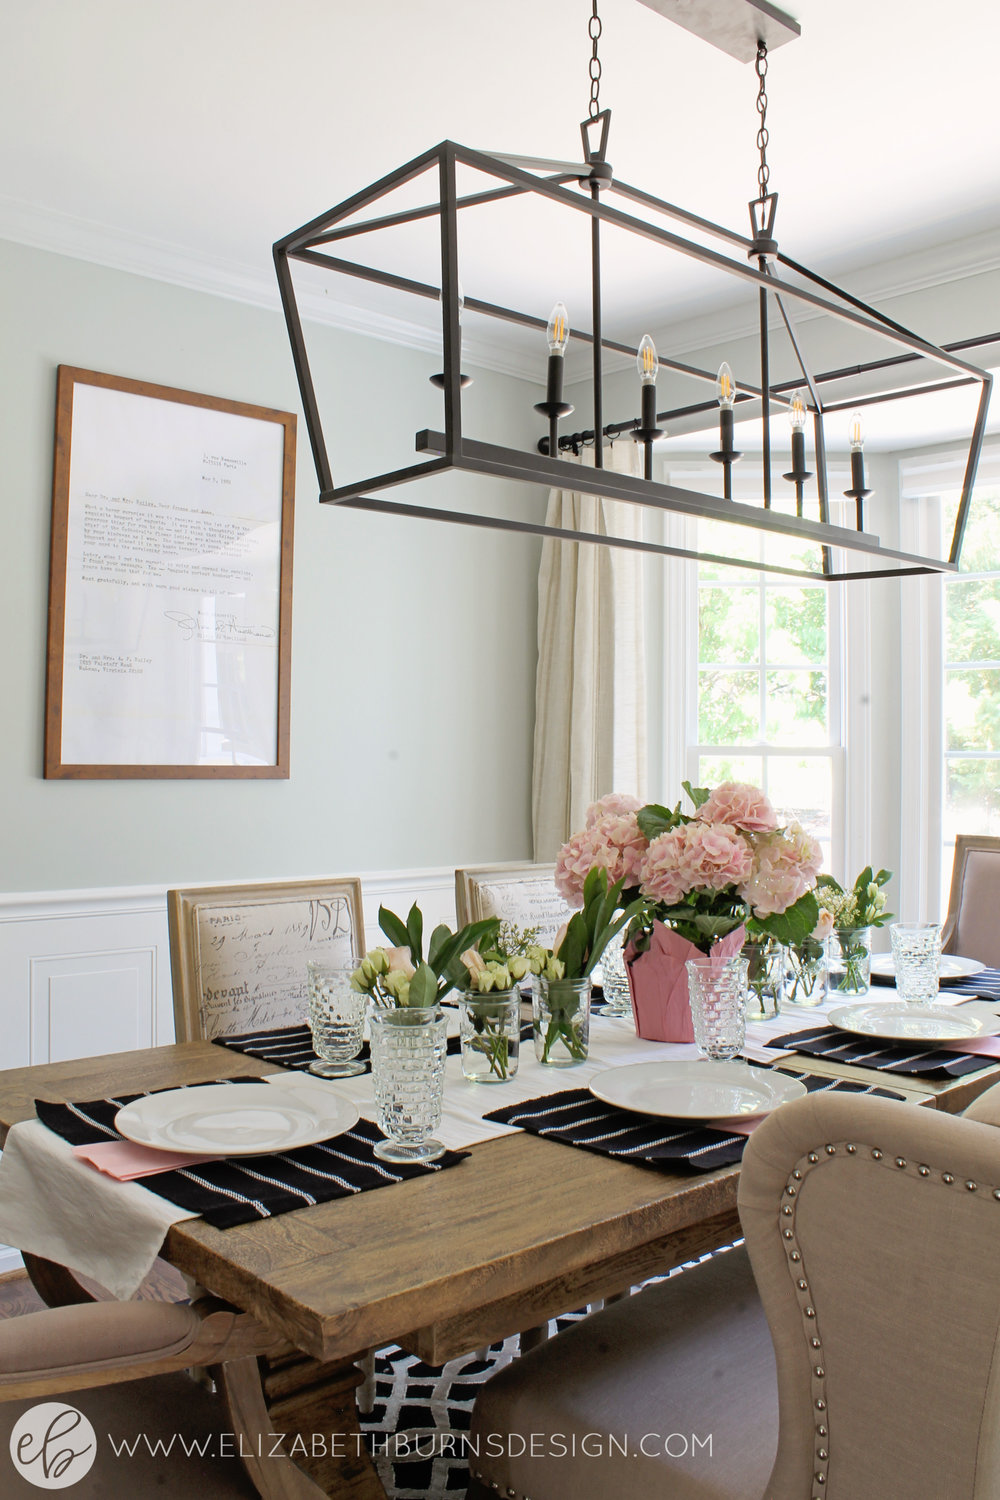 Elizabeth Burns Design - Budget Farmhouse Small Dining Room Sherwin Williams Silver Strand Trestle Table Linen Chairs DIY Wainscoting Dark Walnut Oak Floor (5).jpg